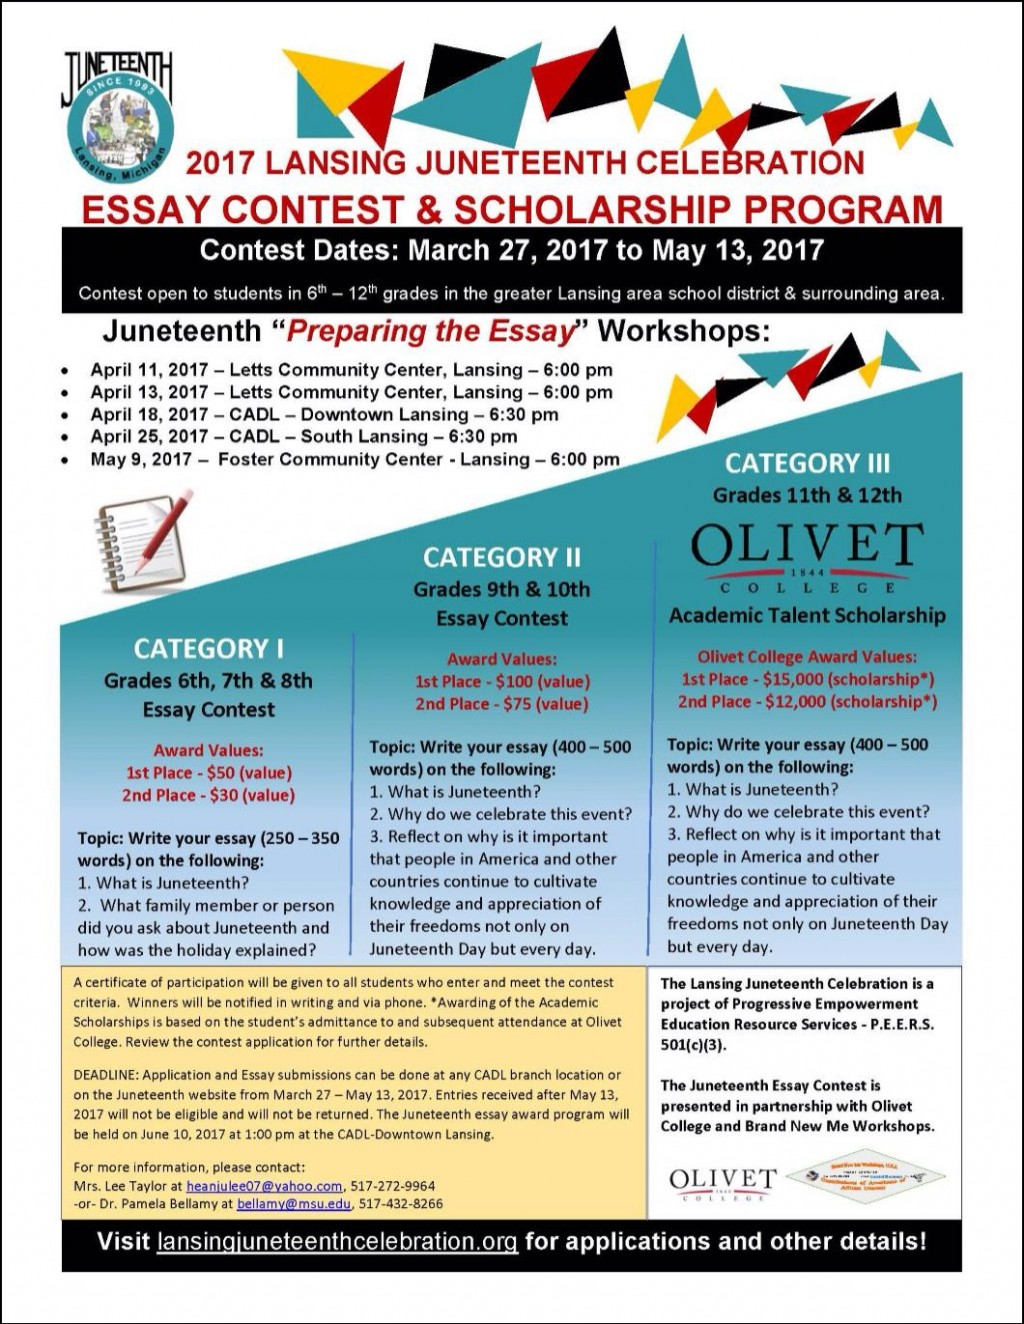 006 Scholarship Essay Contests Img 3215 Stupendous For Middle School Students High Seniors Large